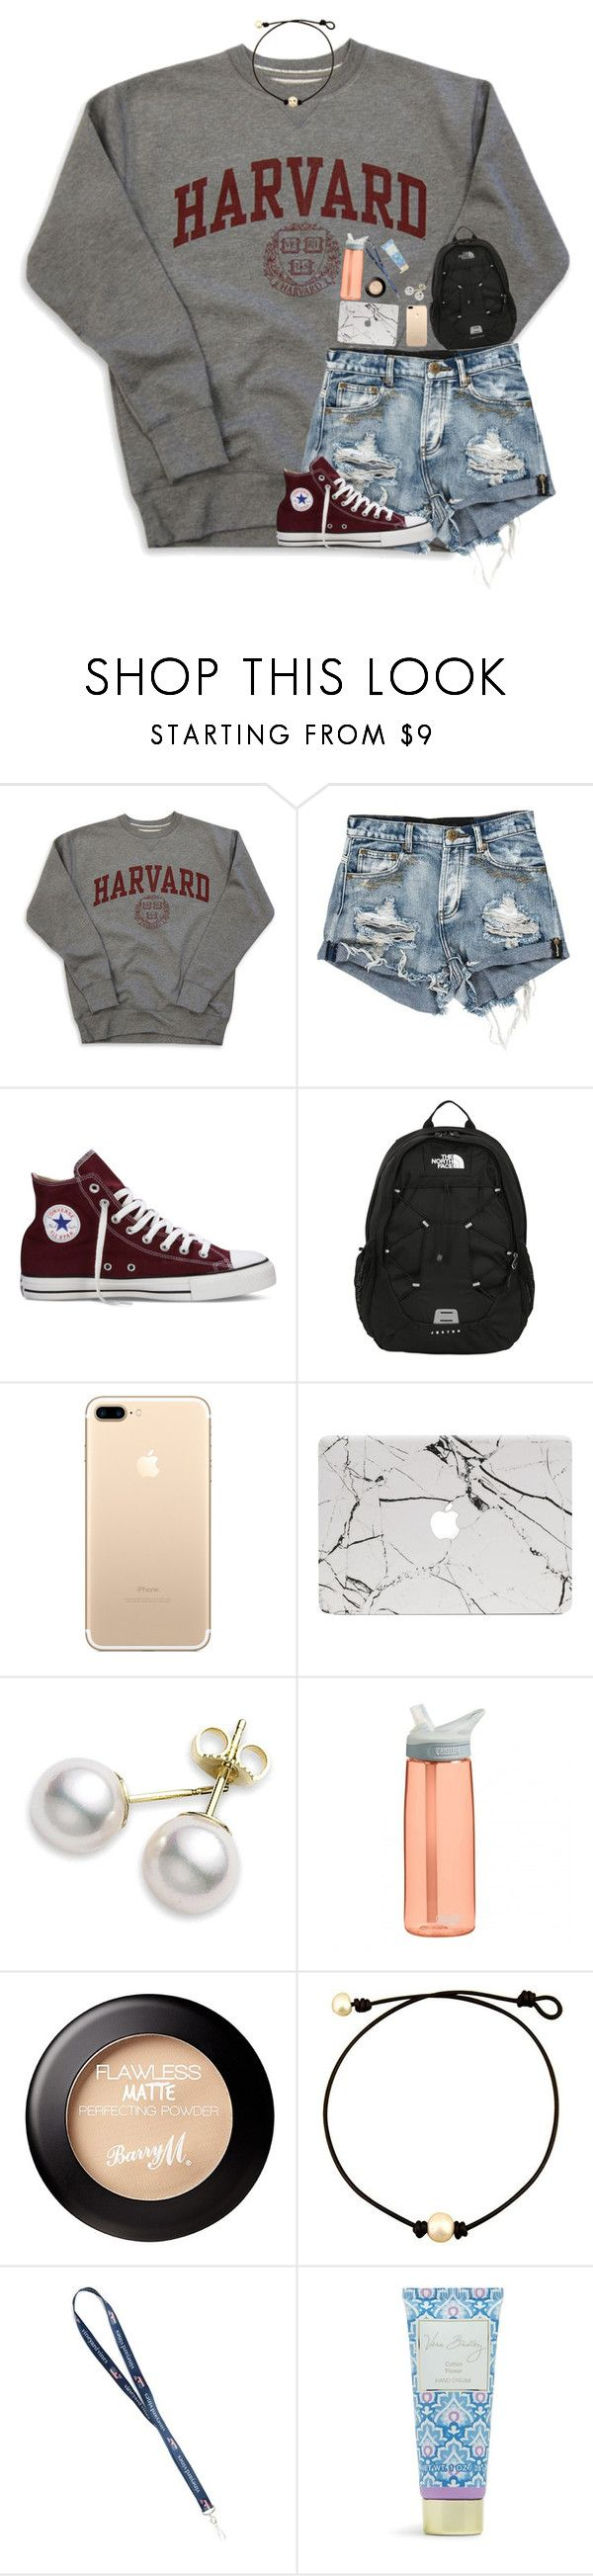 """""""french exam tomorrow"""" by harknessl ❤ liked on Polyvore featuring Converse, The North Face, Mikimoto, CamelBak, Vera Bradley and preppybylauren"""